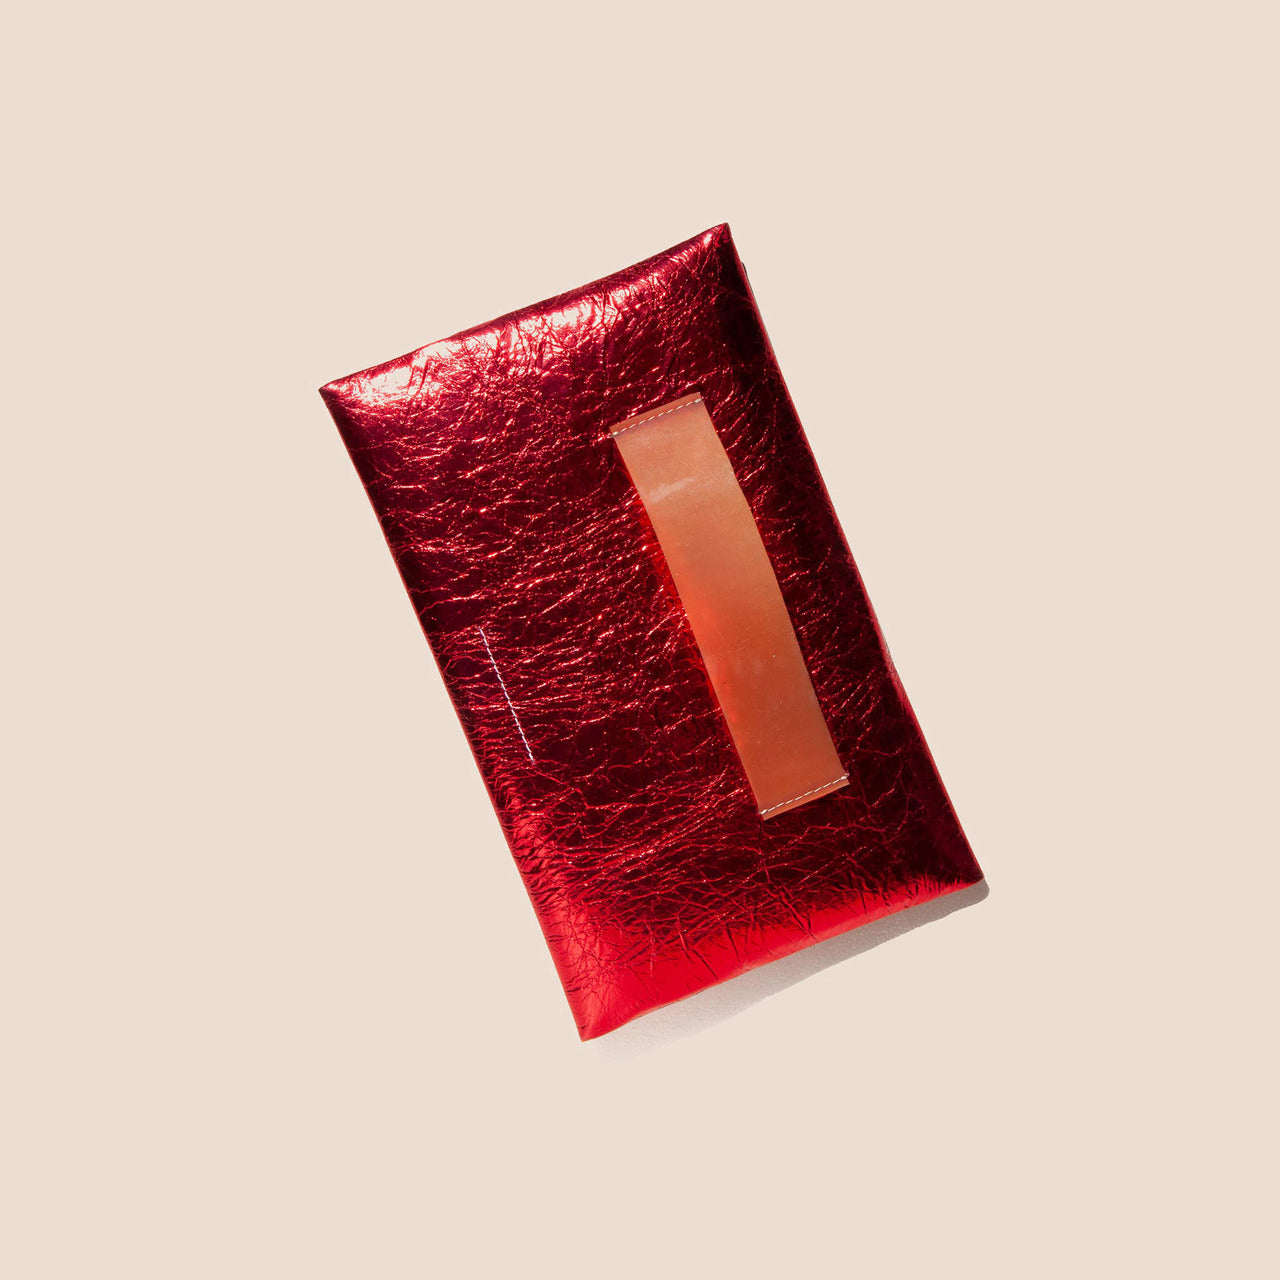 MM6 - Small Zip Pouch - Pompeian Red, available at LCD